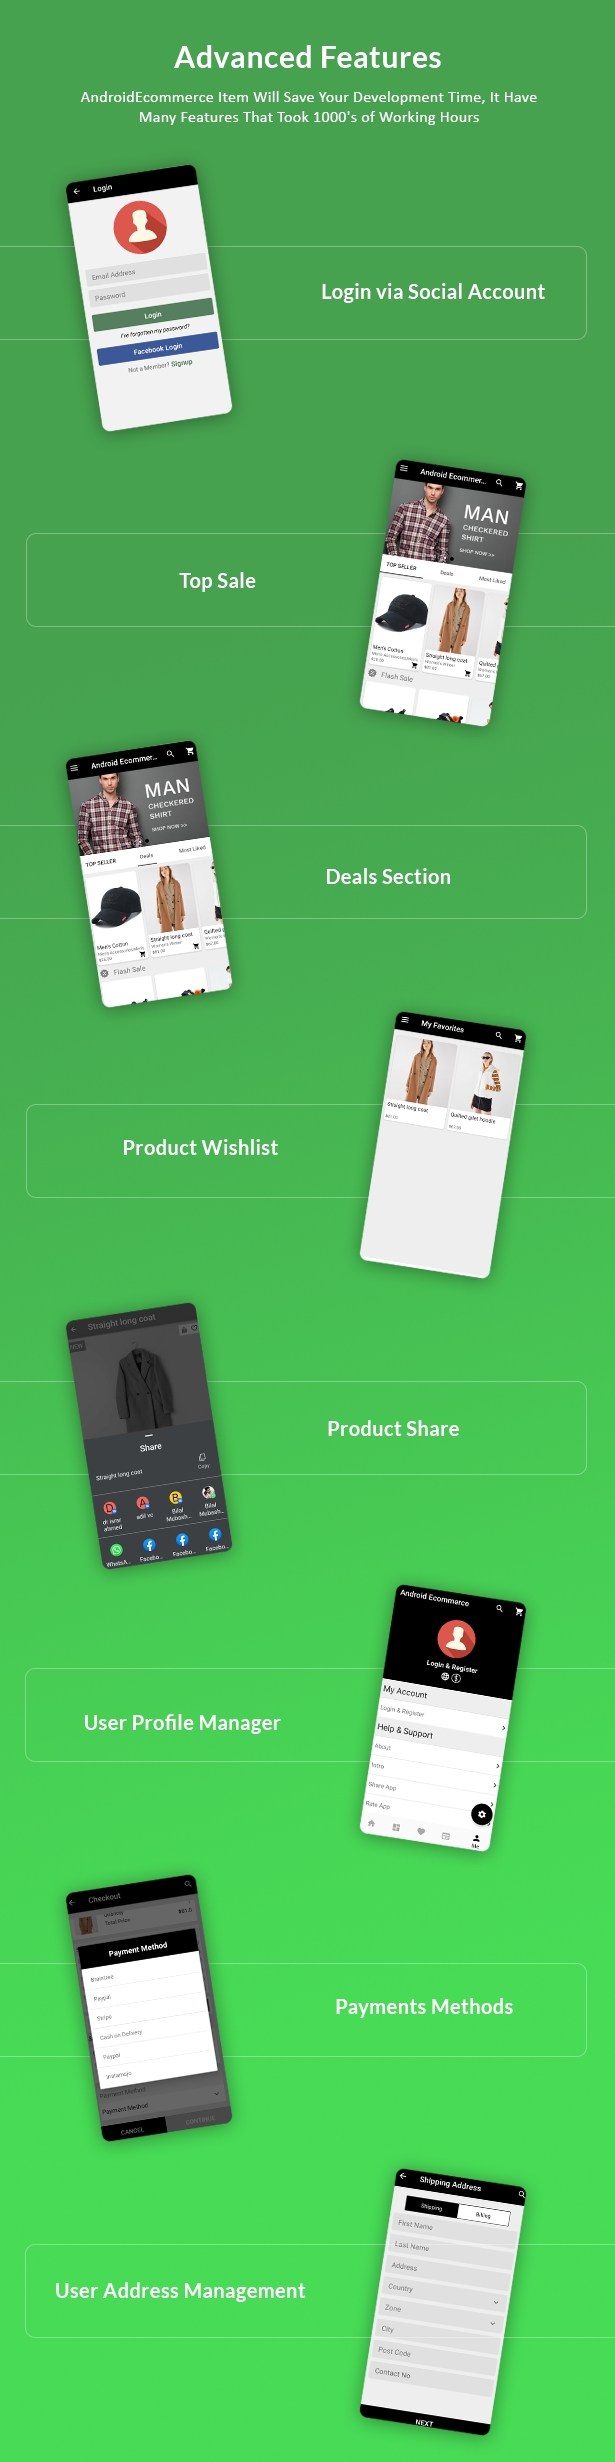 Android Ecommerce - Universal Android Ecommerce / Store Full Mobile App with Laravel CMS - 21